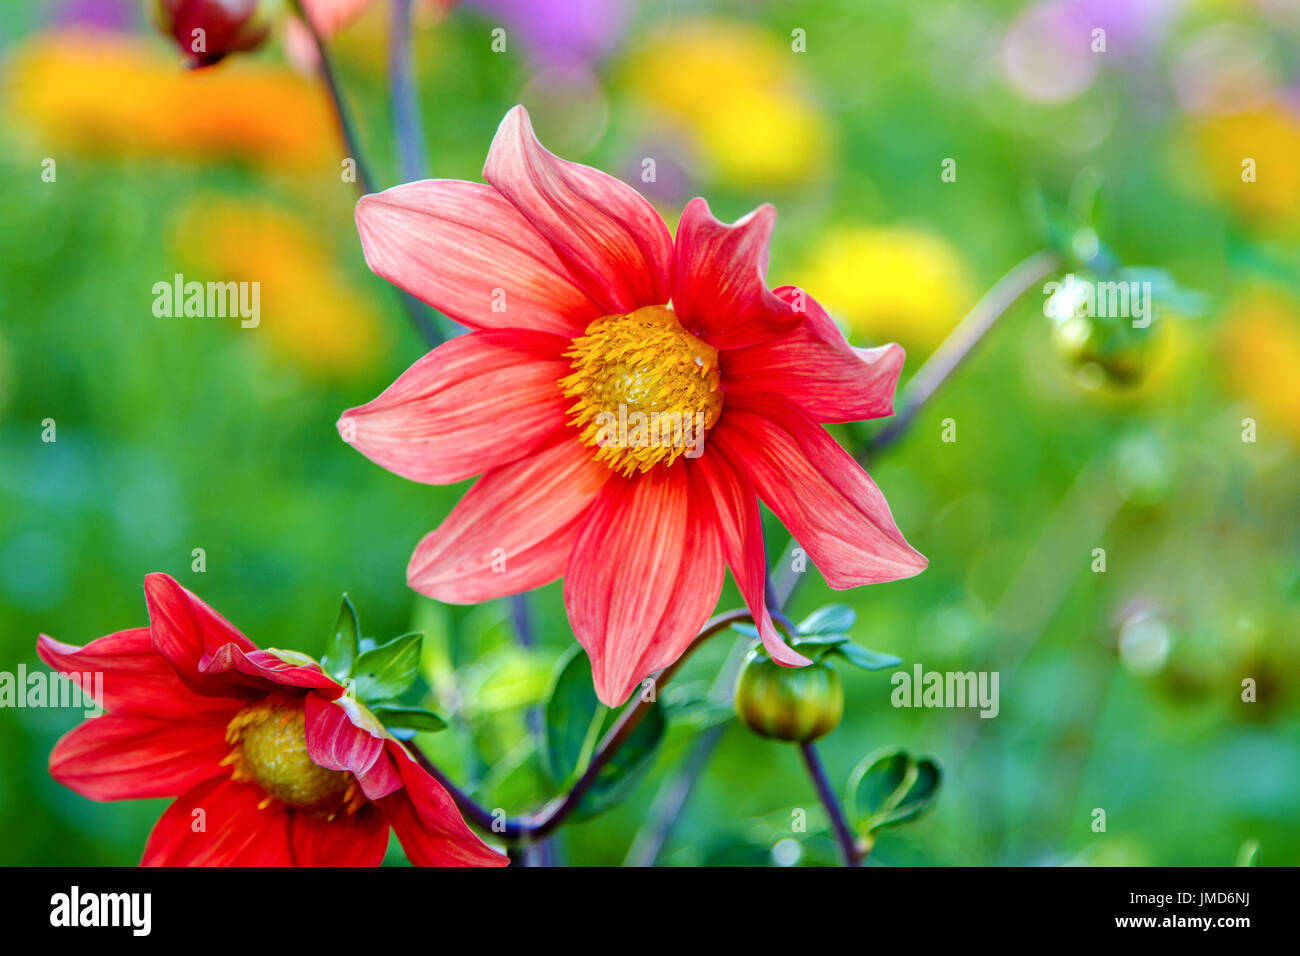 Red Dahlia With Yellow Center Stock Photos Red Dahlia With Yellow